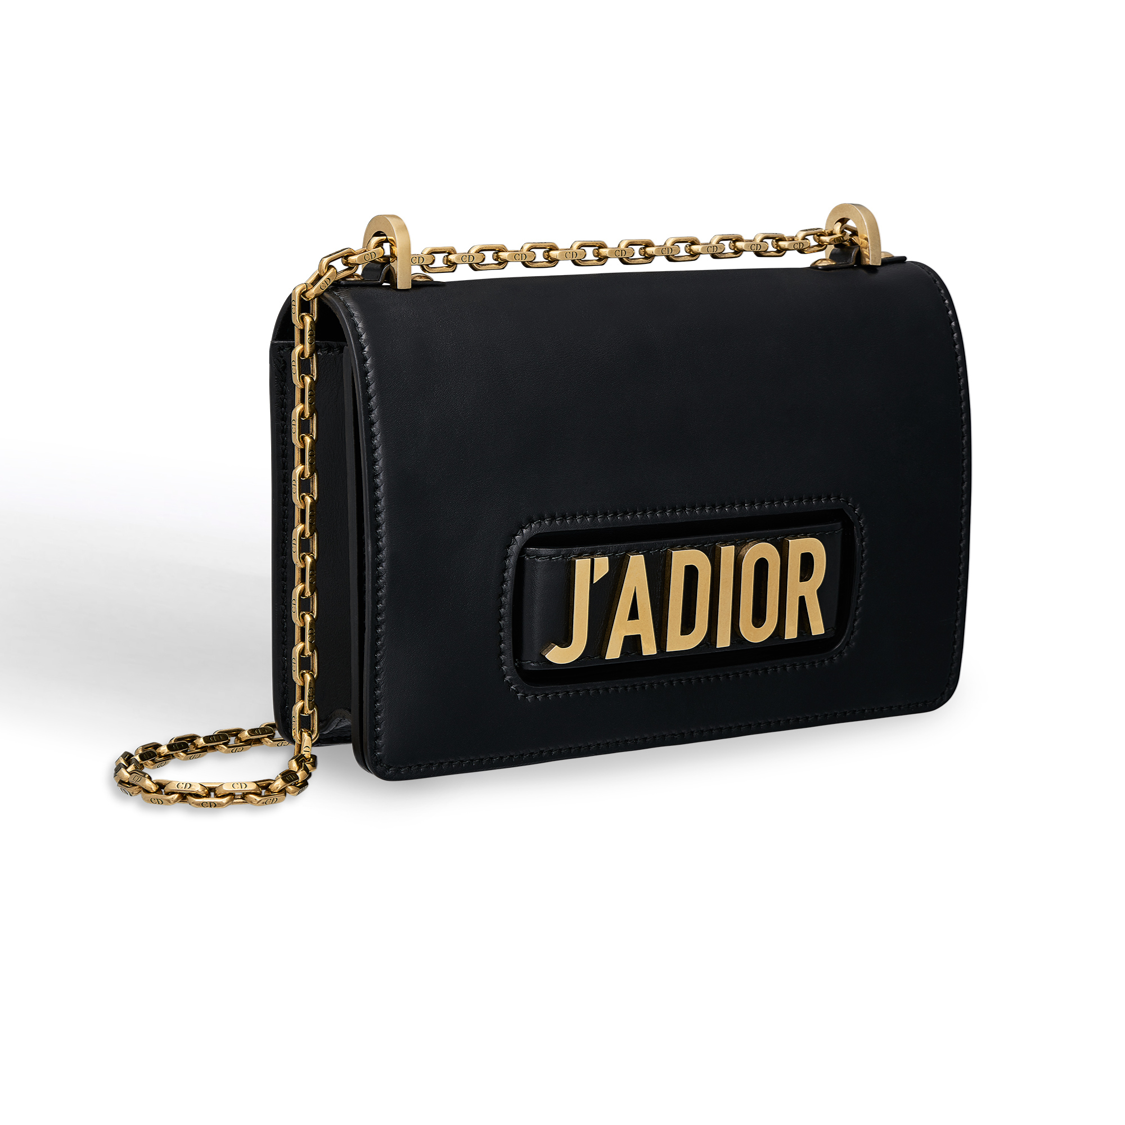 Dior J'adior bag side